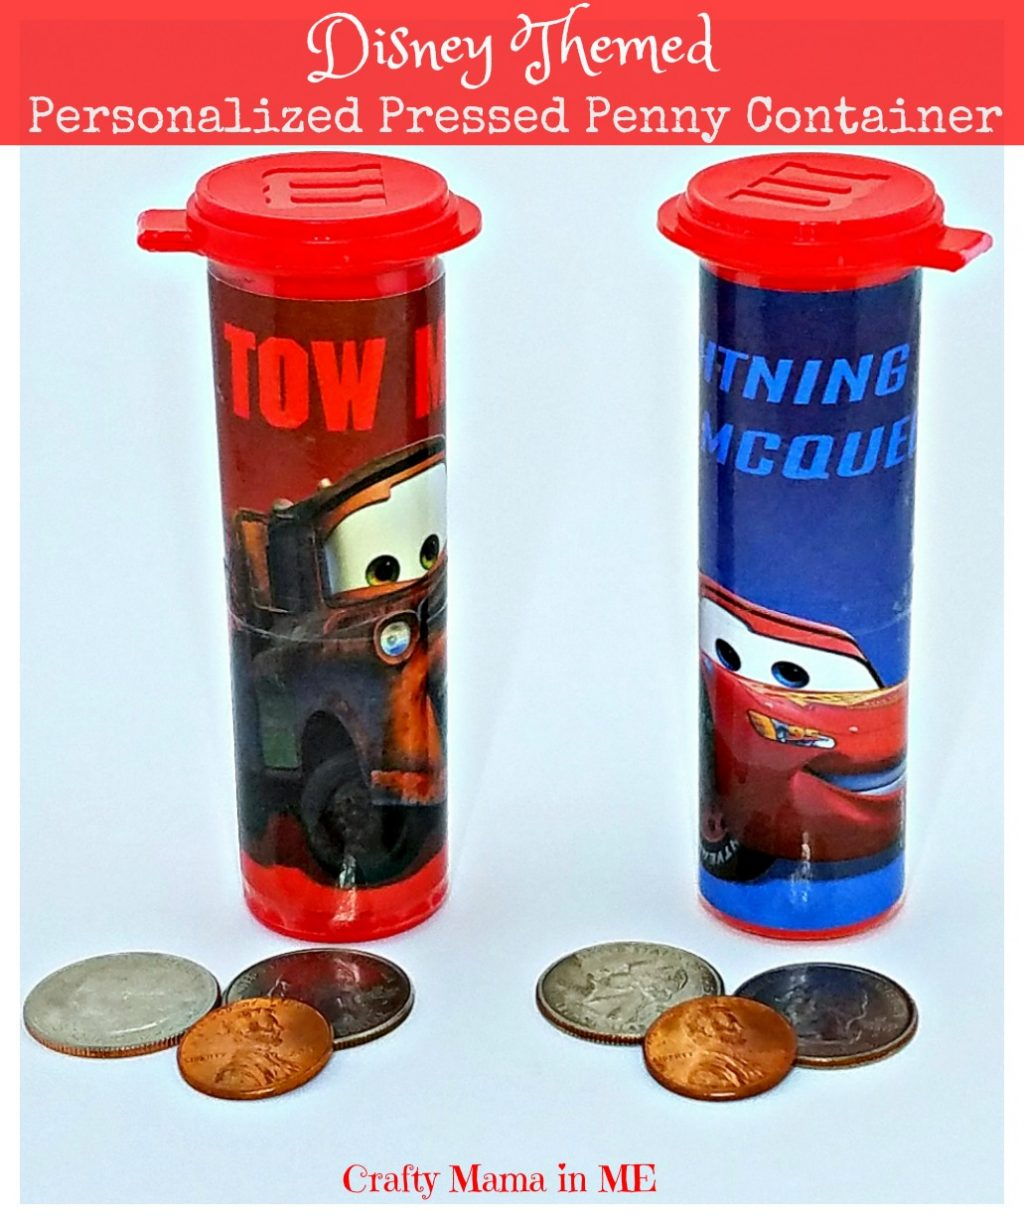 How to Make a Personalized Disney Themed Pressed Penny Container